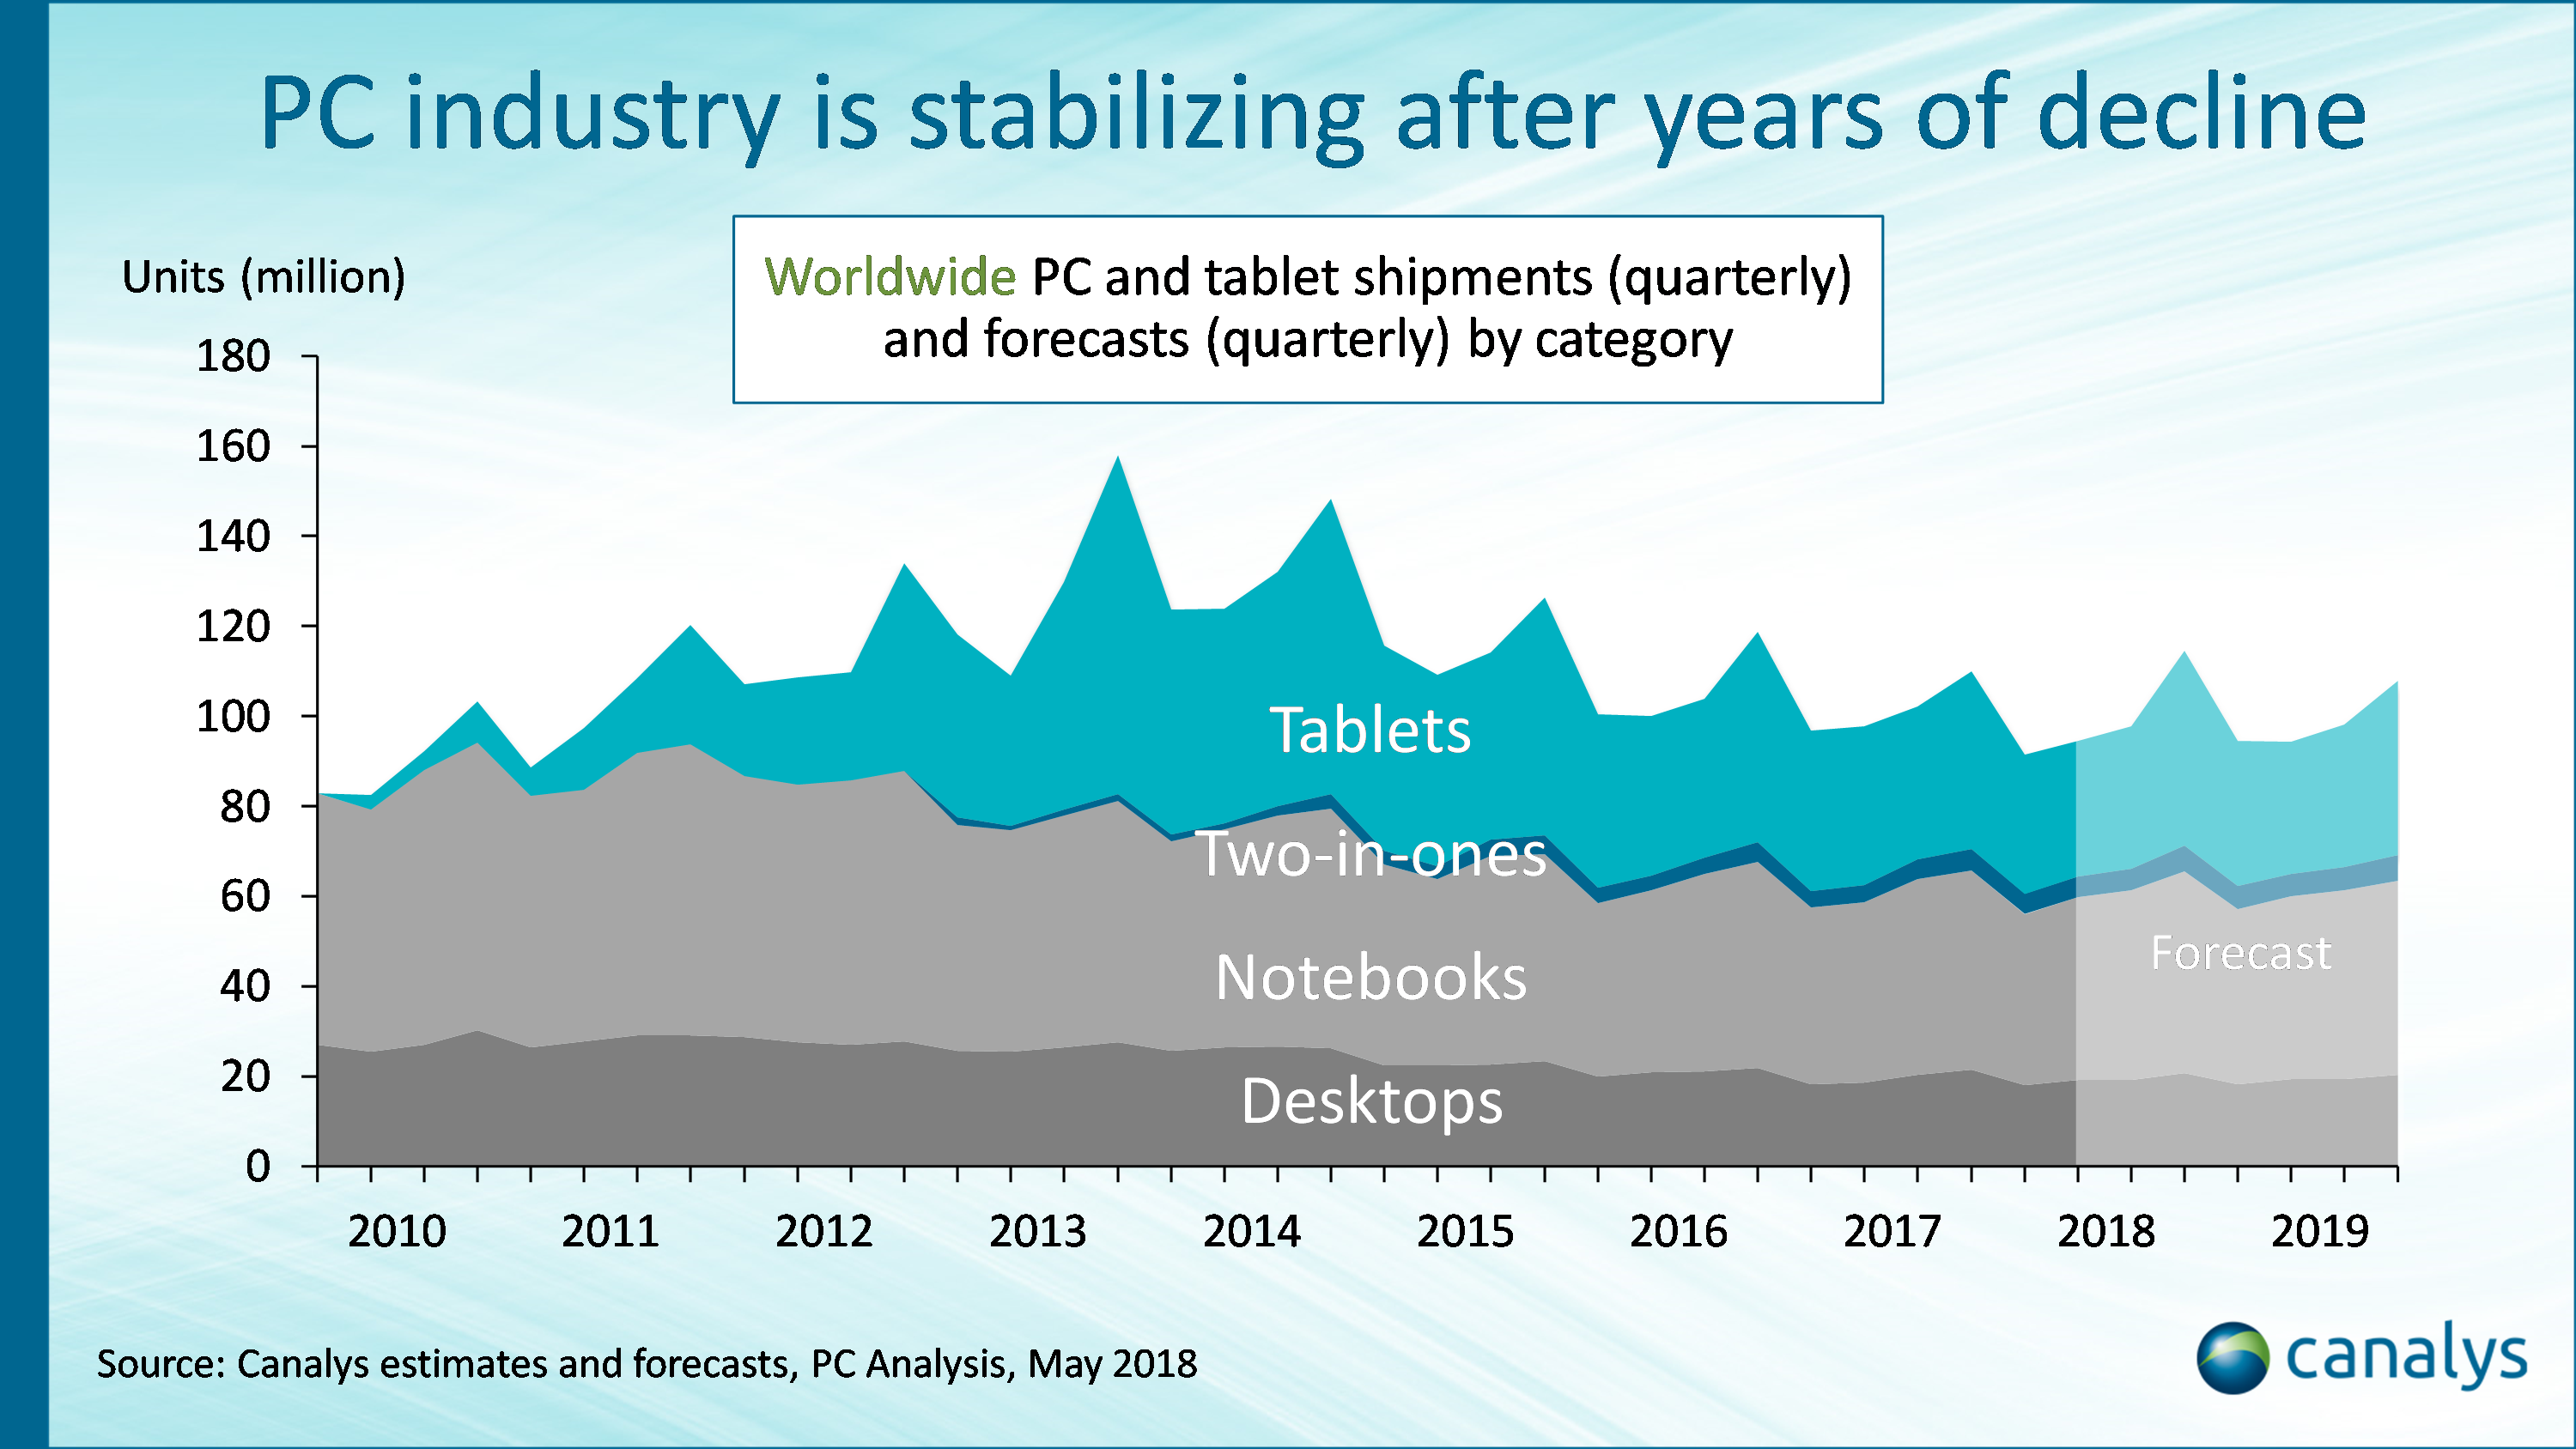 Tablets and PCs set for modest 2.1% decline in 2018 as the industry finally starts to stabilize